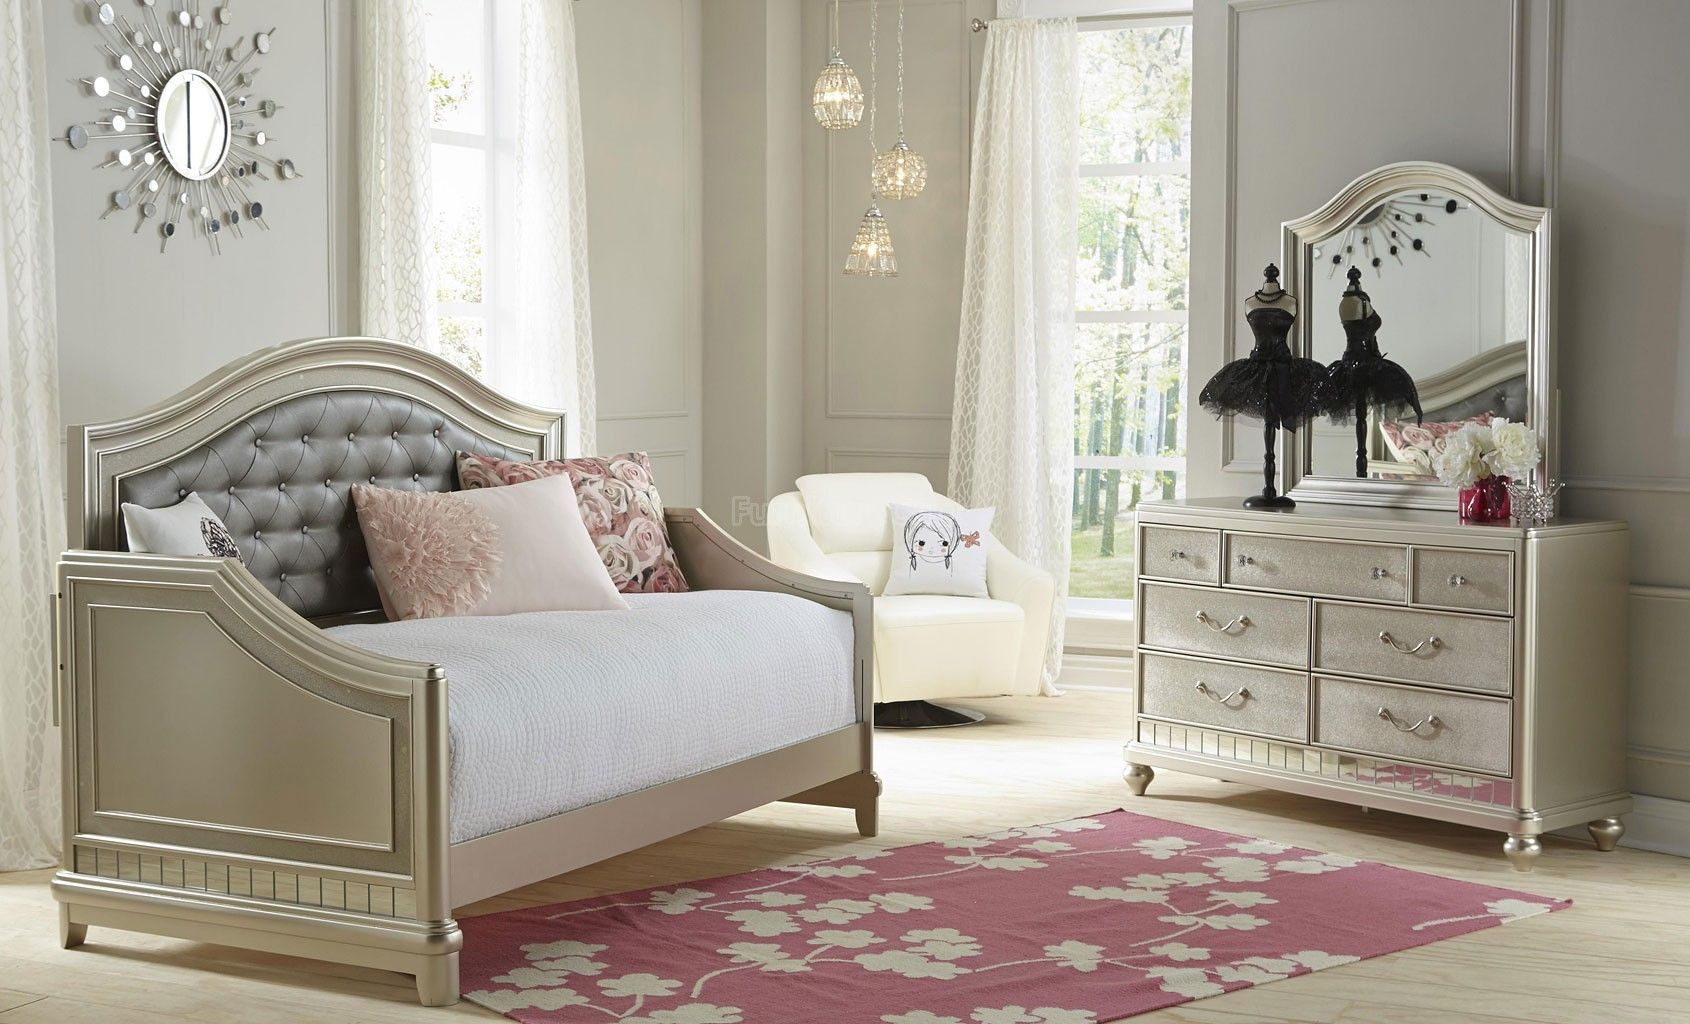 Image of: Awesome Diva Bedroom Set